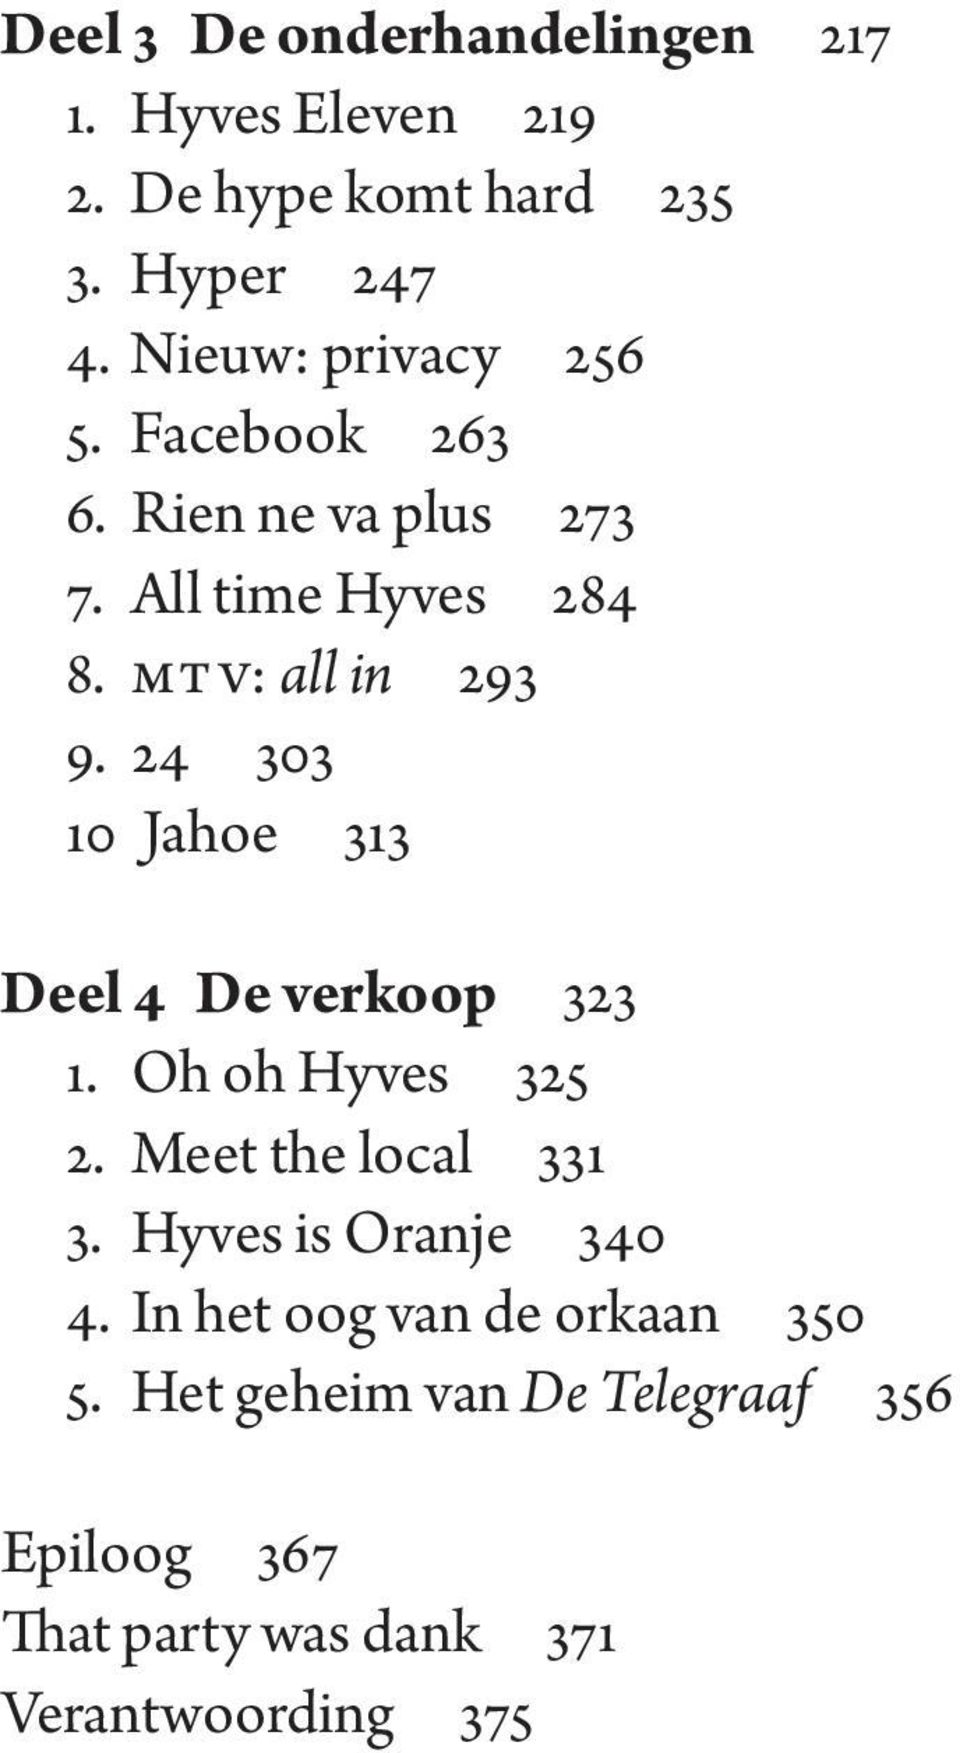 24 303 10 Jahoe 313 Deel 4 De verkoop 323 1. Oh oh Hyves 325 2. Meet the local 331 3.